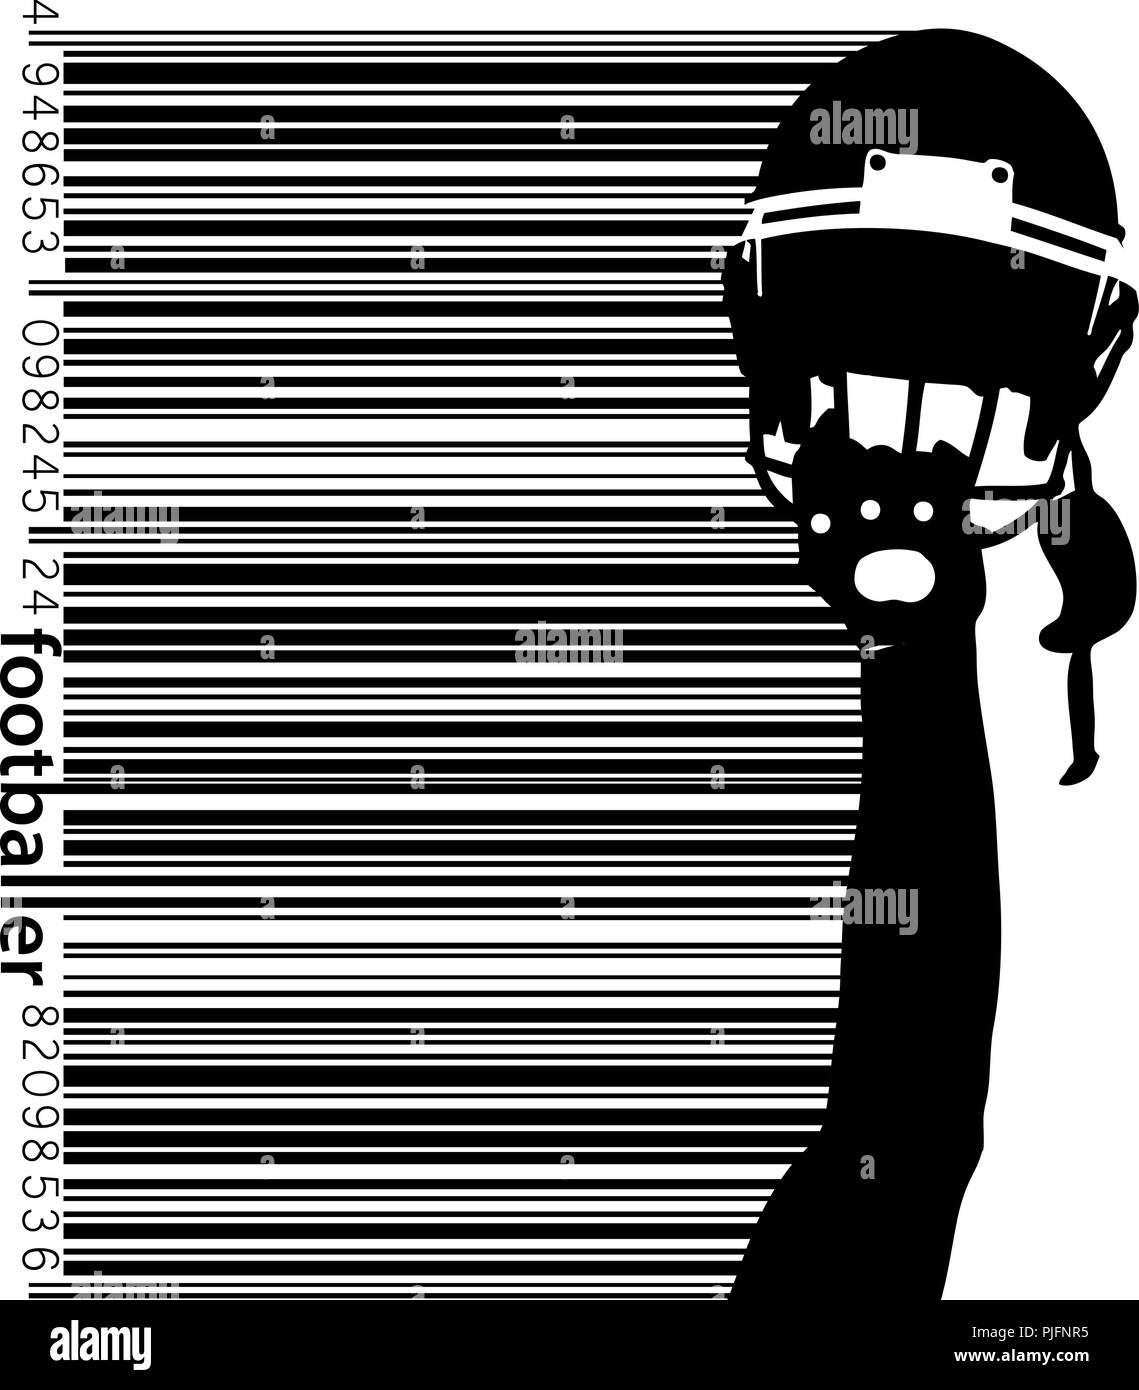 football helmet and hand silhouette. Background and text on a separate layer, color can be changed in one click. Rugby. American football - Stock Image